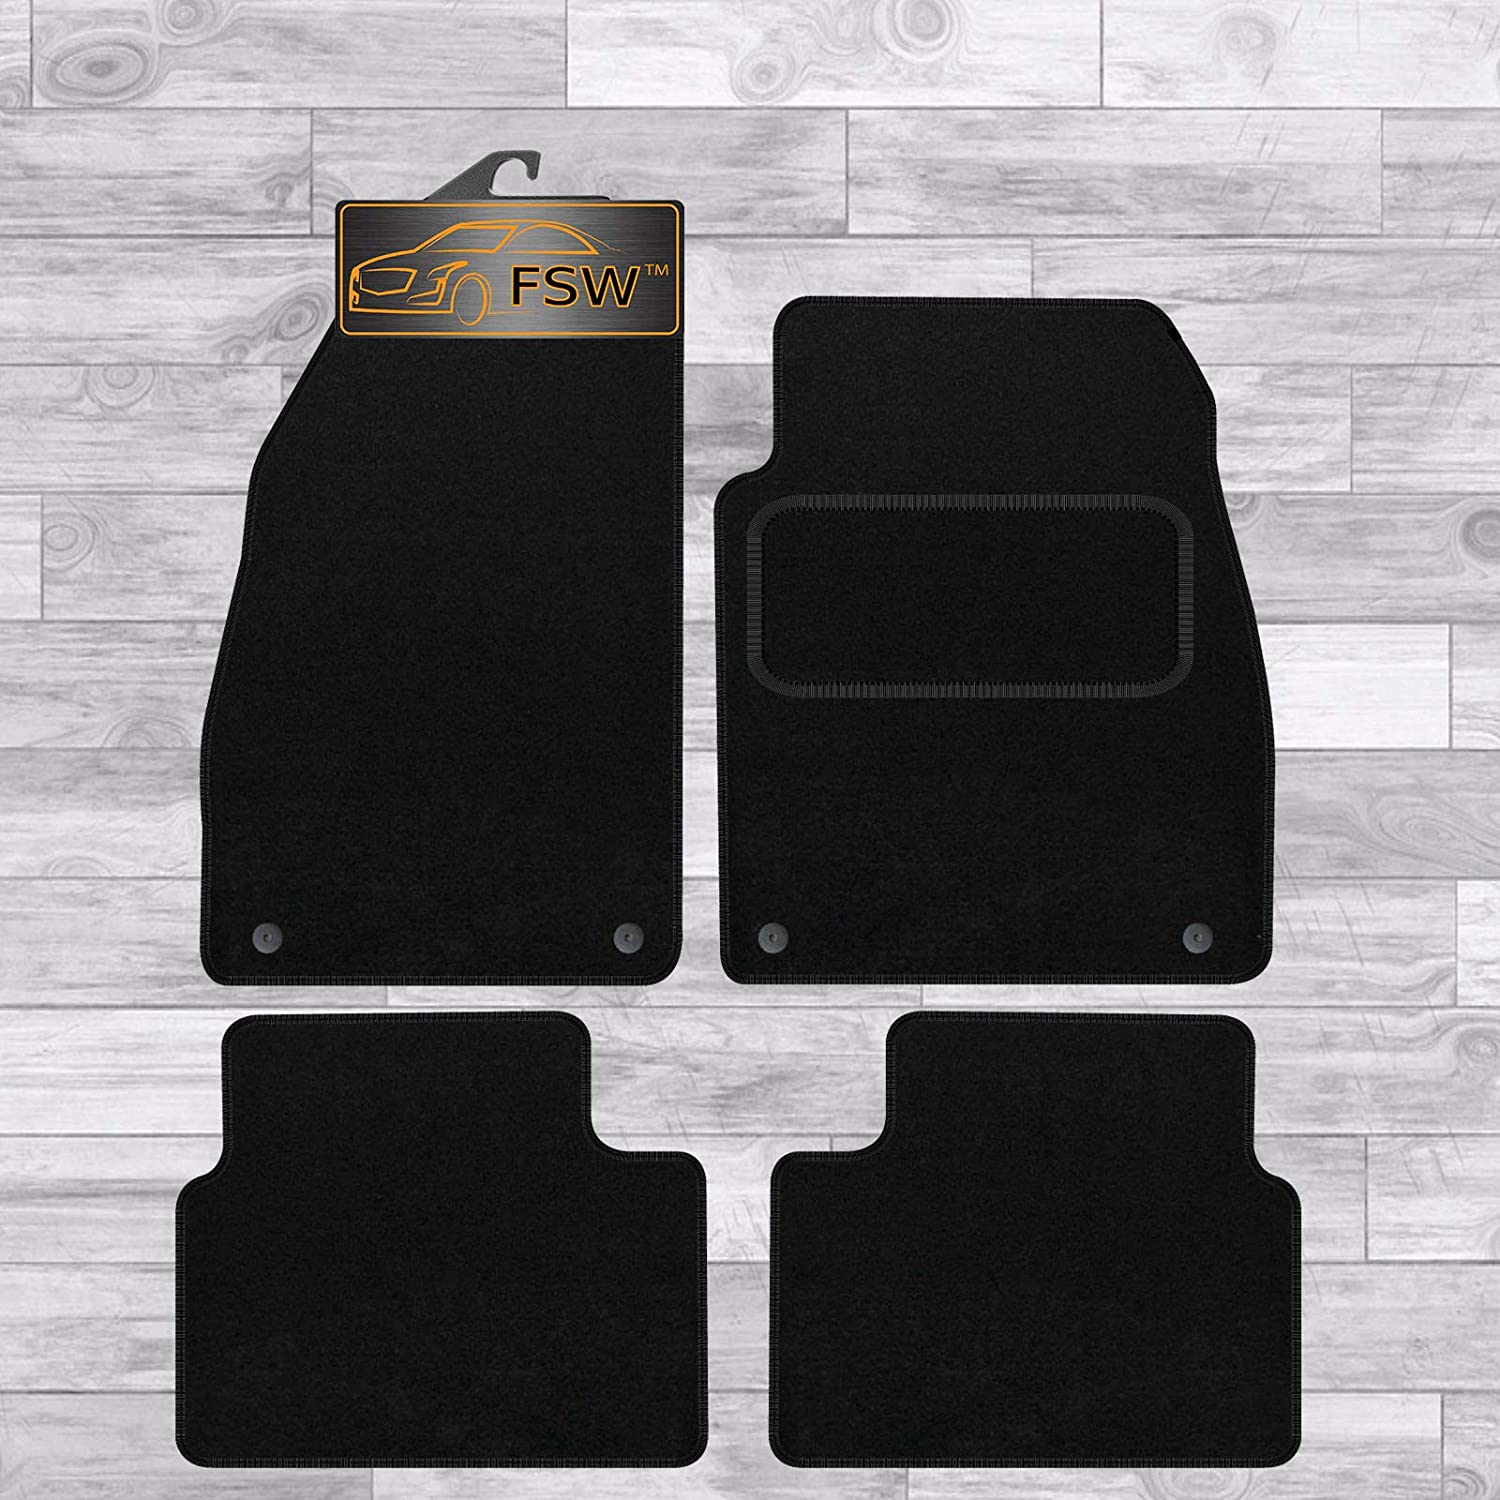 FSW Insignia Car Mats 2008-2013 Fully Tailored Classic Carpet Car Floor Mats Black